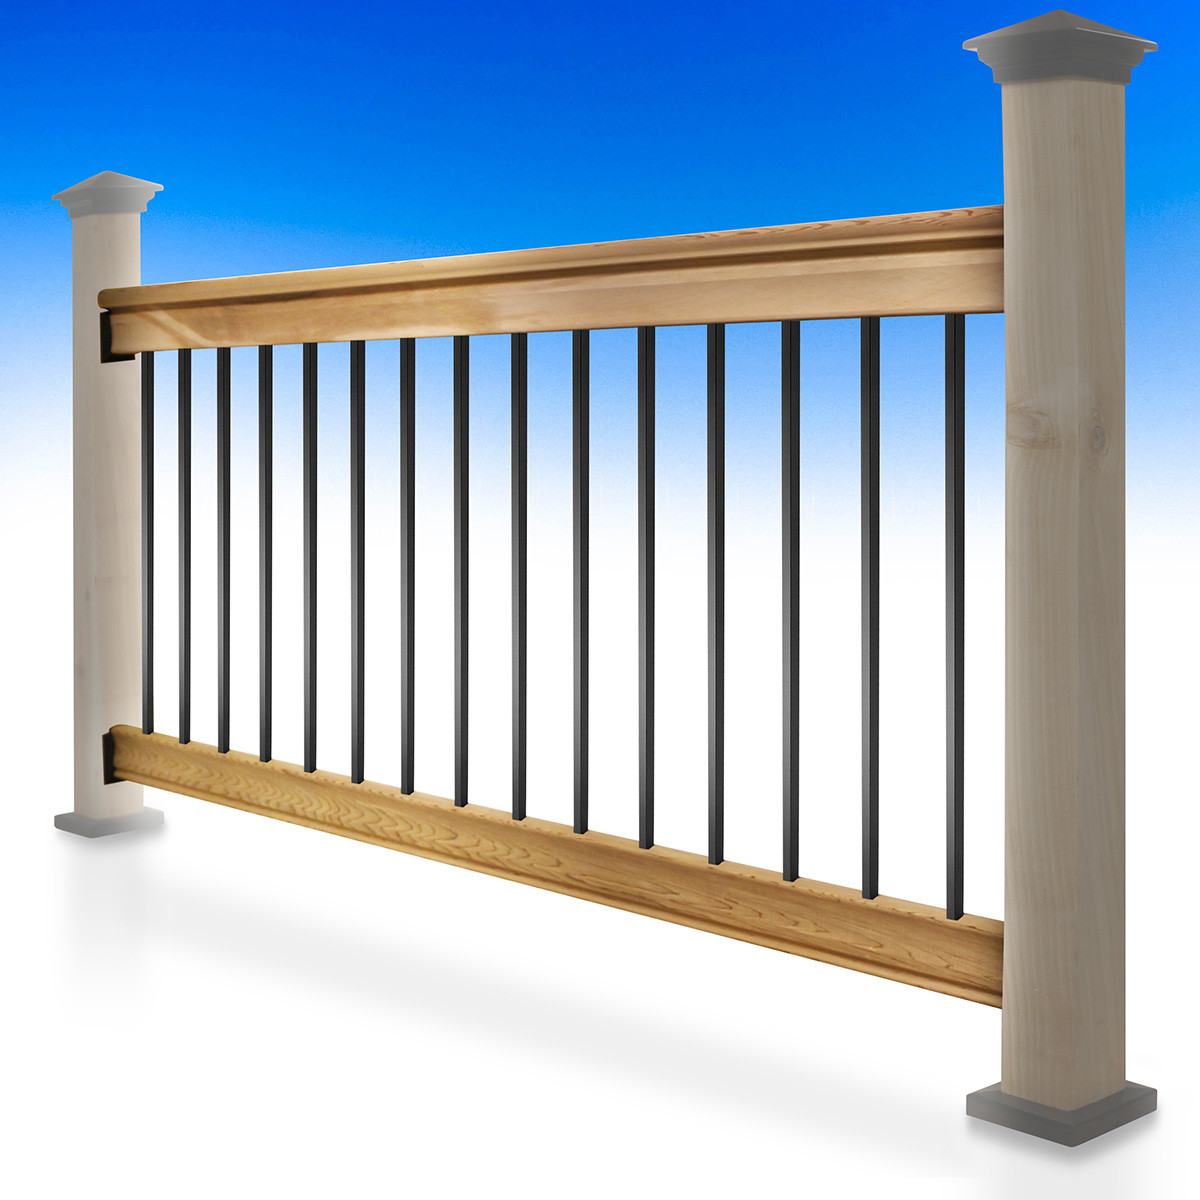 Somerset Level Deck Railing Kit by Vista - black square balusters